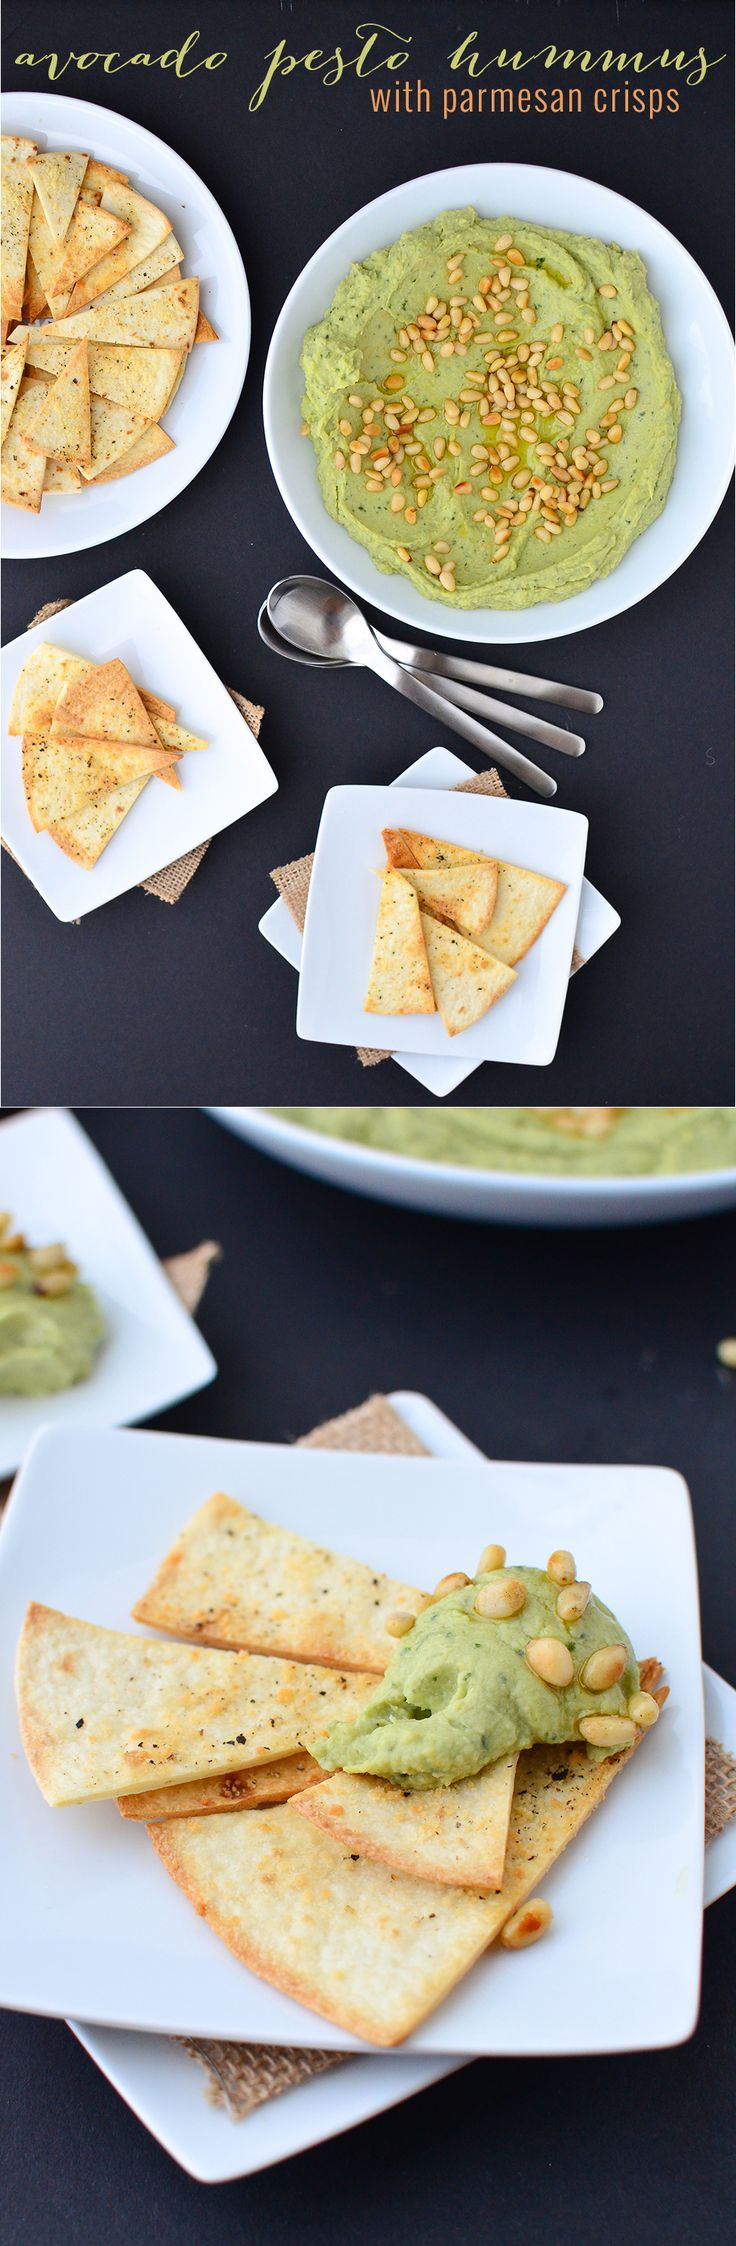 You've got to make this dip! Avocado Pesto Hummus with homemade parmesan crisps. | www.delishknowledge.com